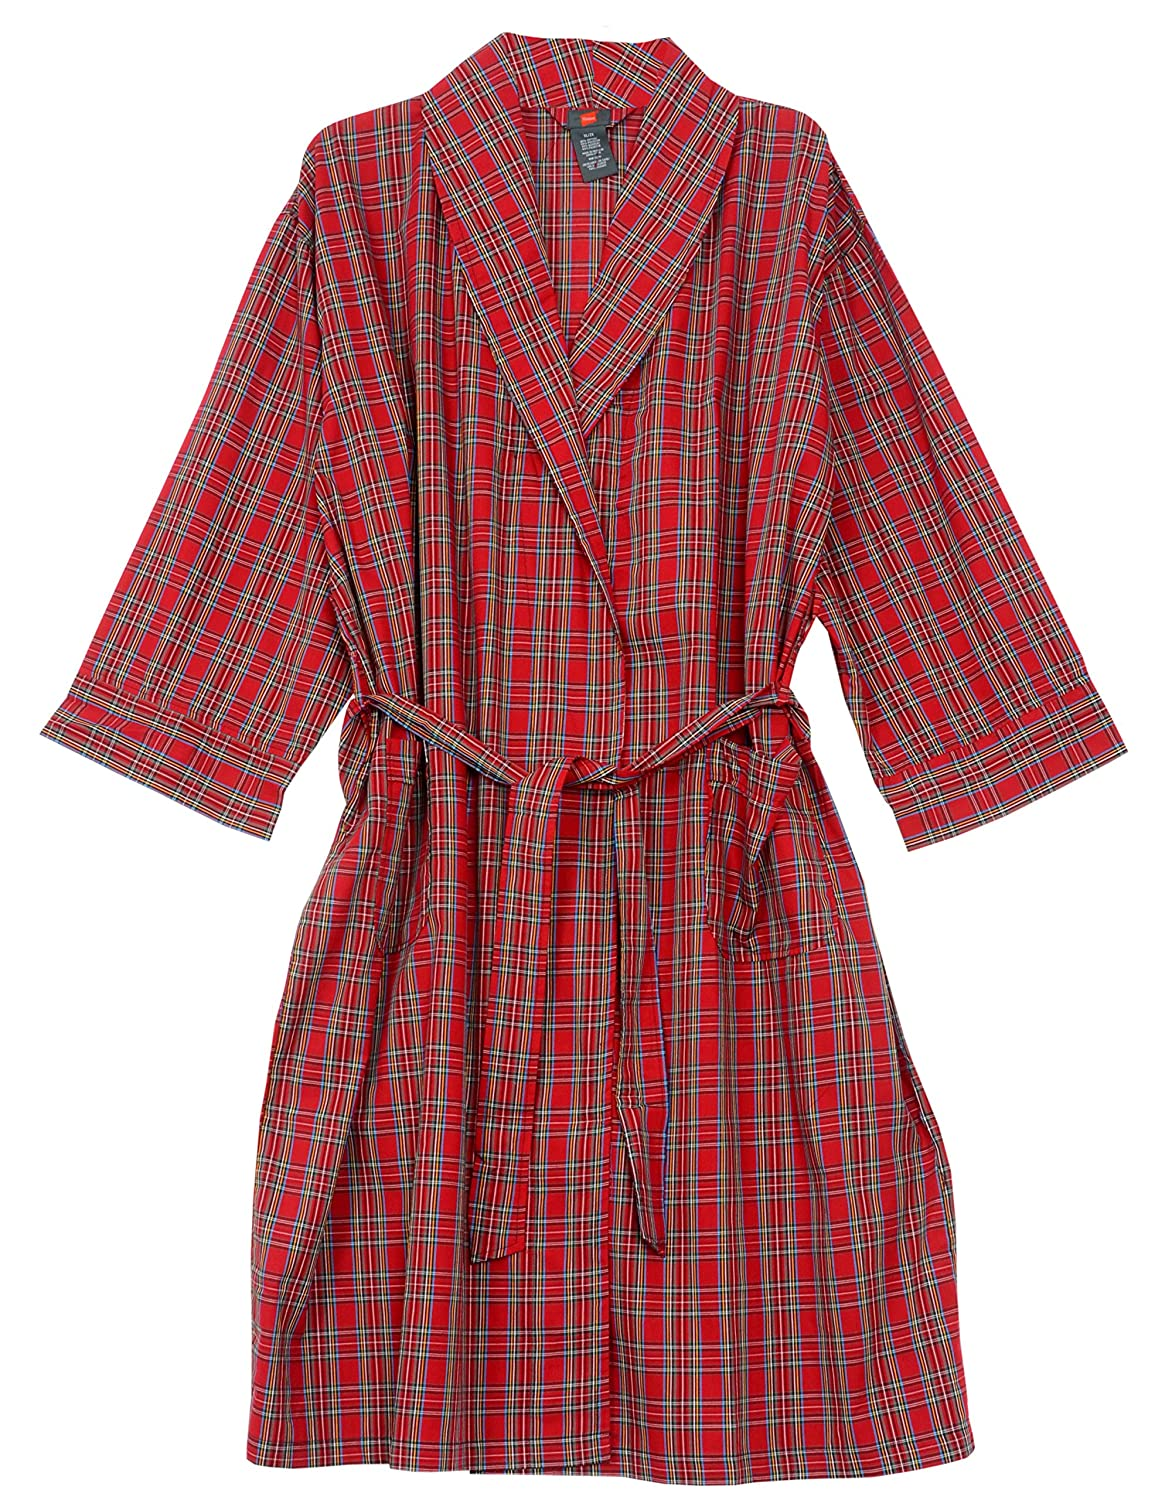 Davis Hanes Big and Tall Light Weight Plaid Robe